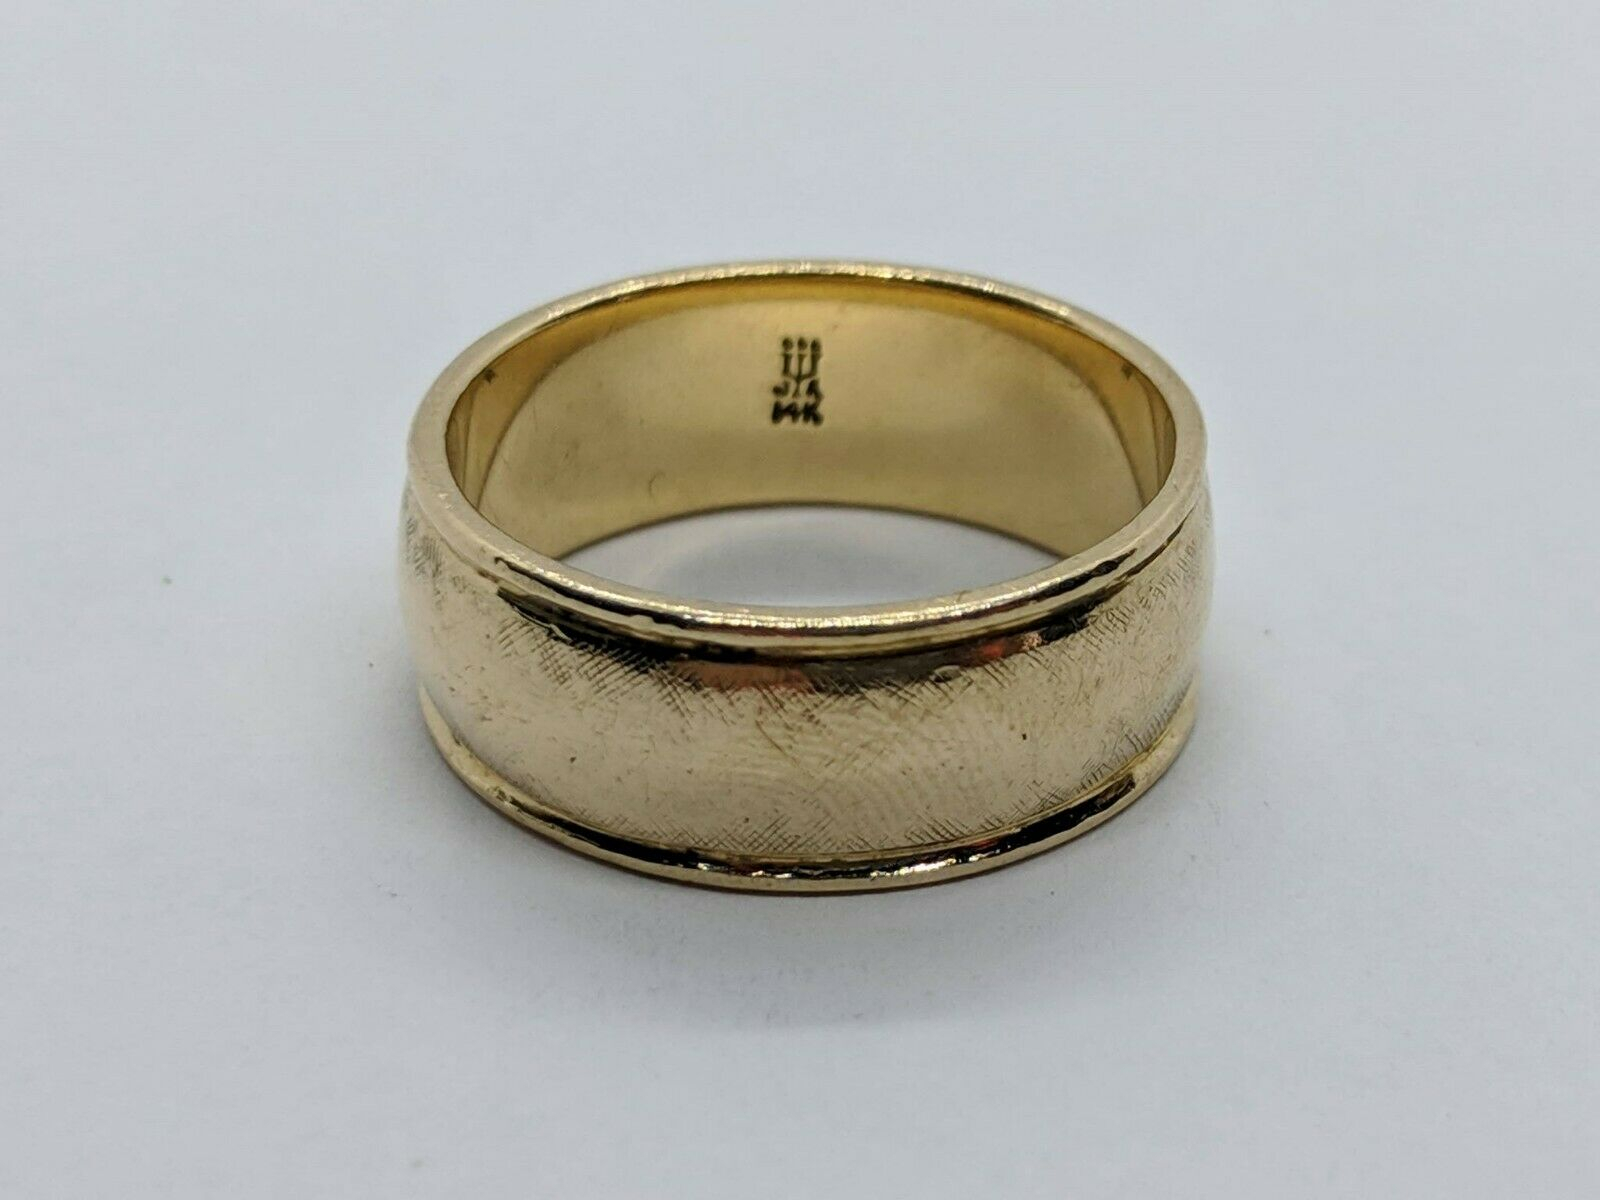 Retired James Avery 14K Yellow Gold Regal Wedding Band Ring Size 9.5 Free  Ship Regarding Most Recent Regal Band Rings (Gallery 22 of 25)